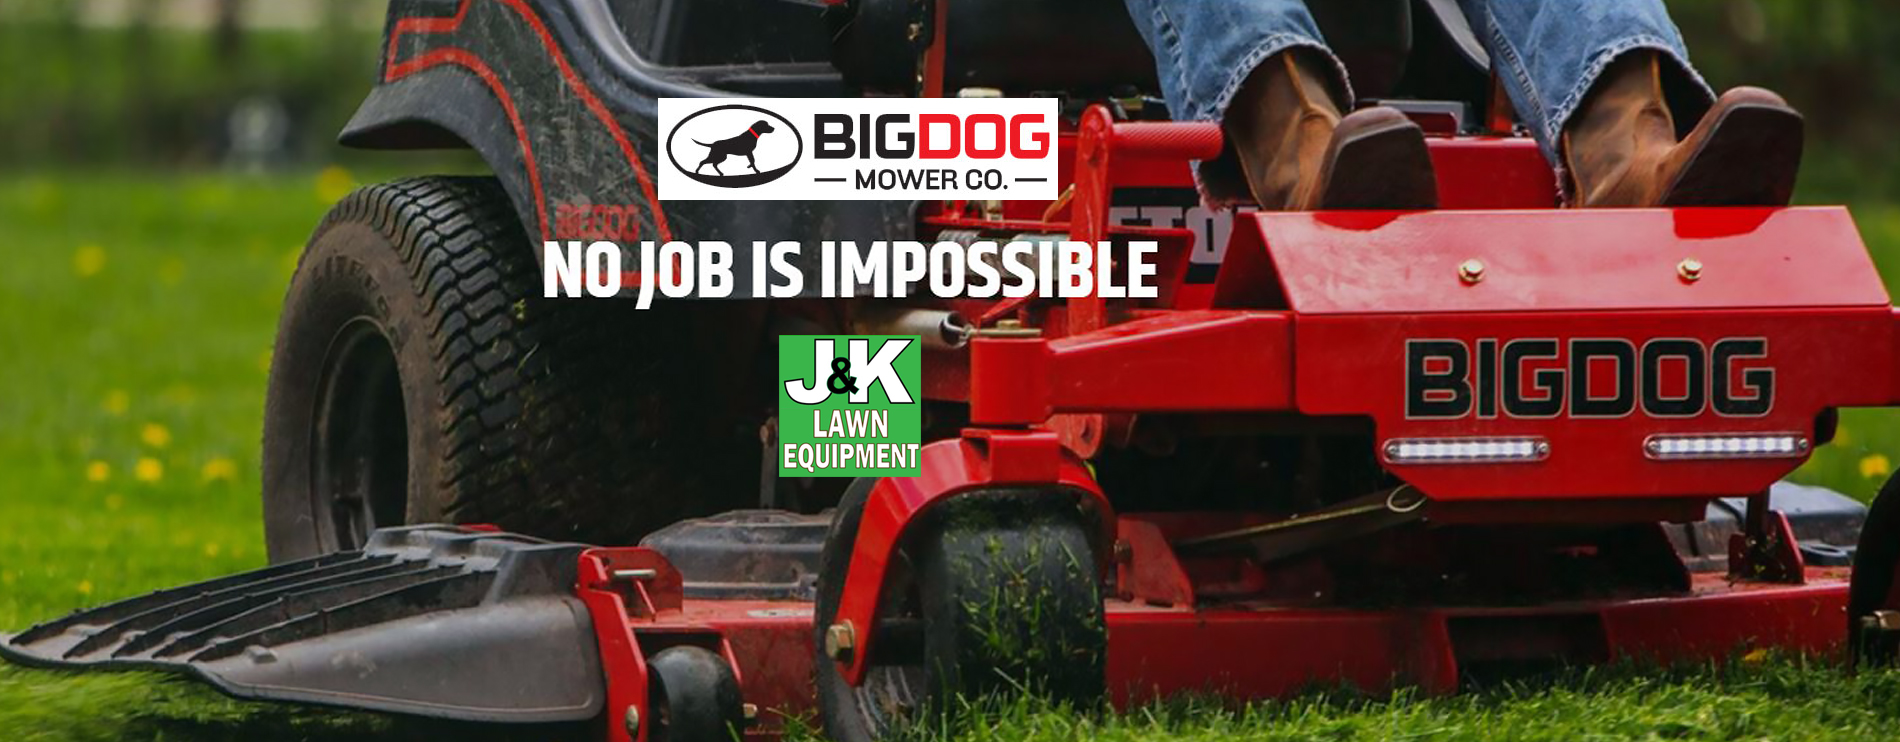 Big Dog Zero Turn Mowers, J and K Lawn Equipment